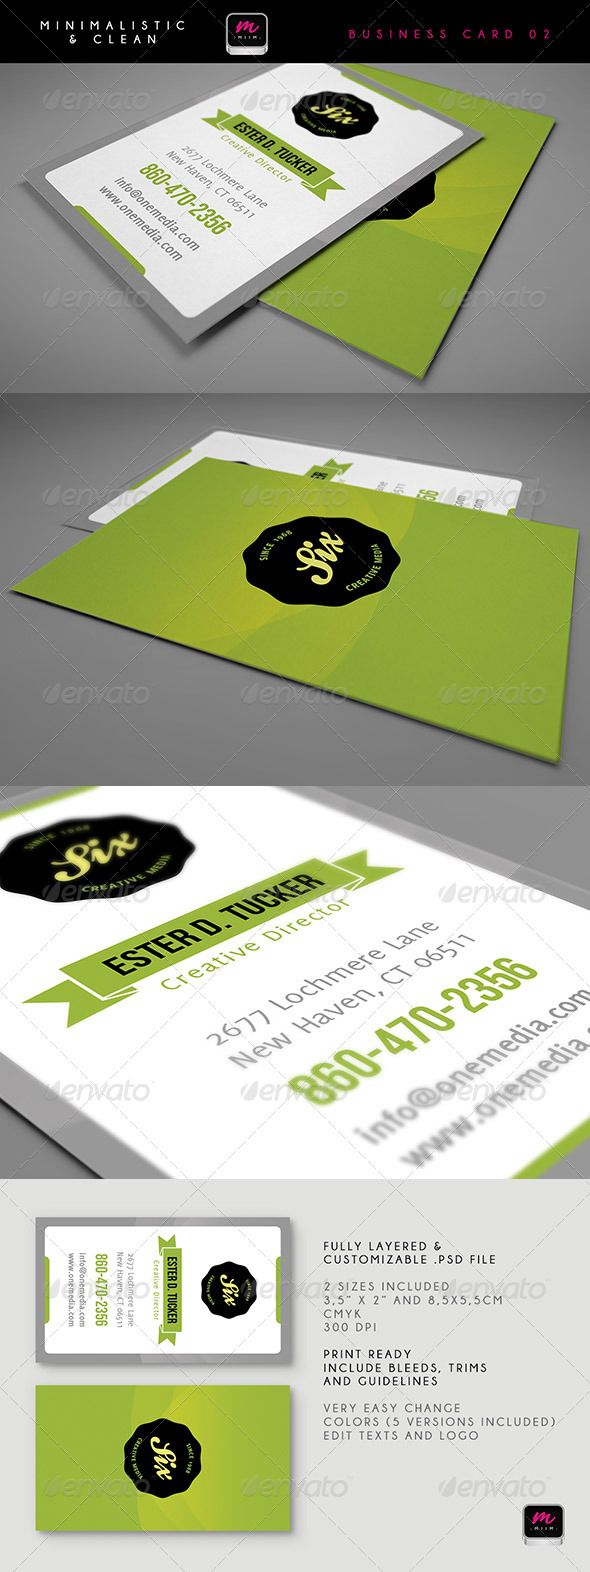 Clean Business Card Template 03 Cleaning Business Cards Business Card Design Minimal Business Card Template